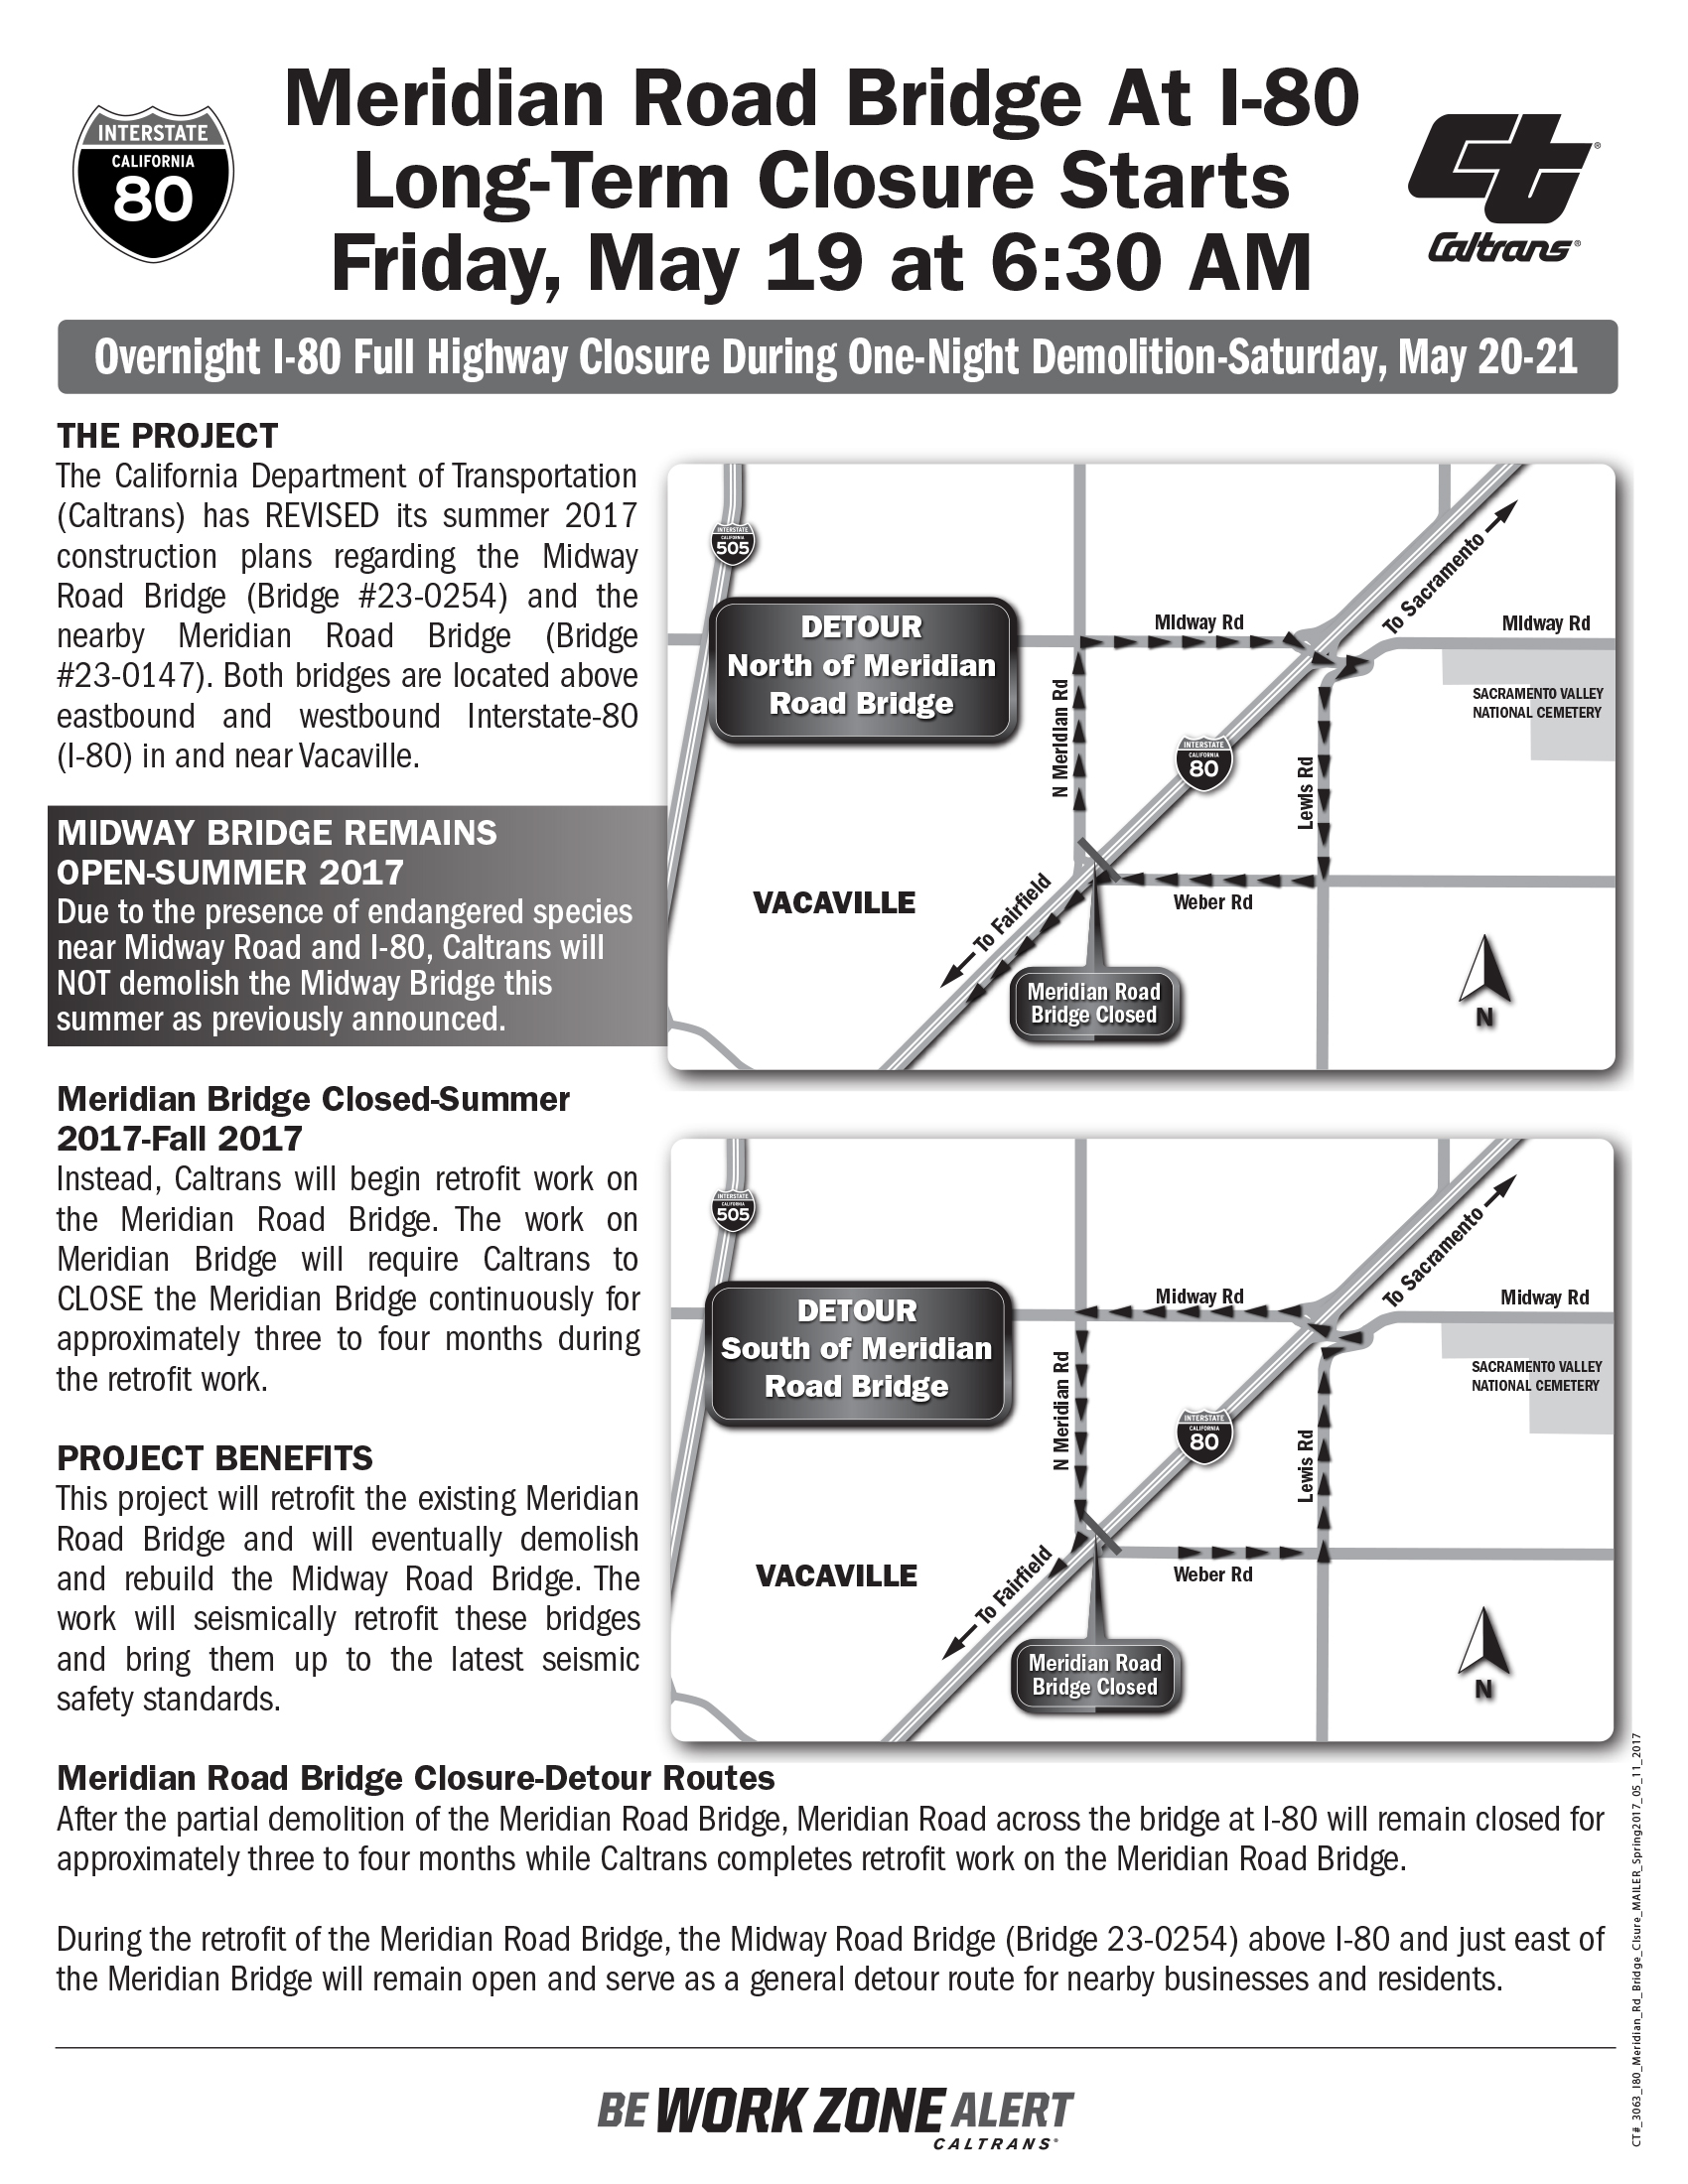 Page 1 of the Meridian Road overcrossing closure flyer